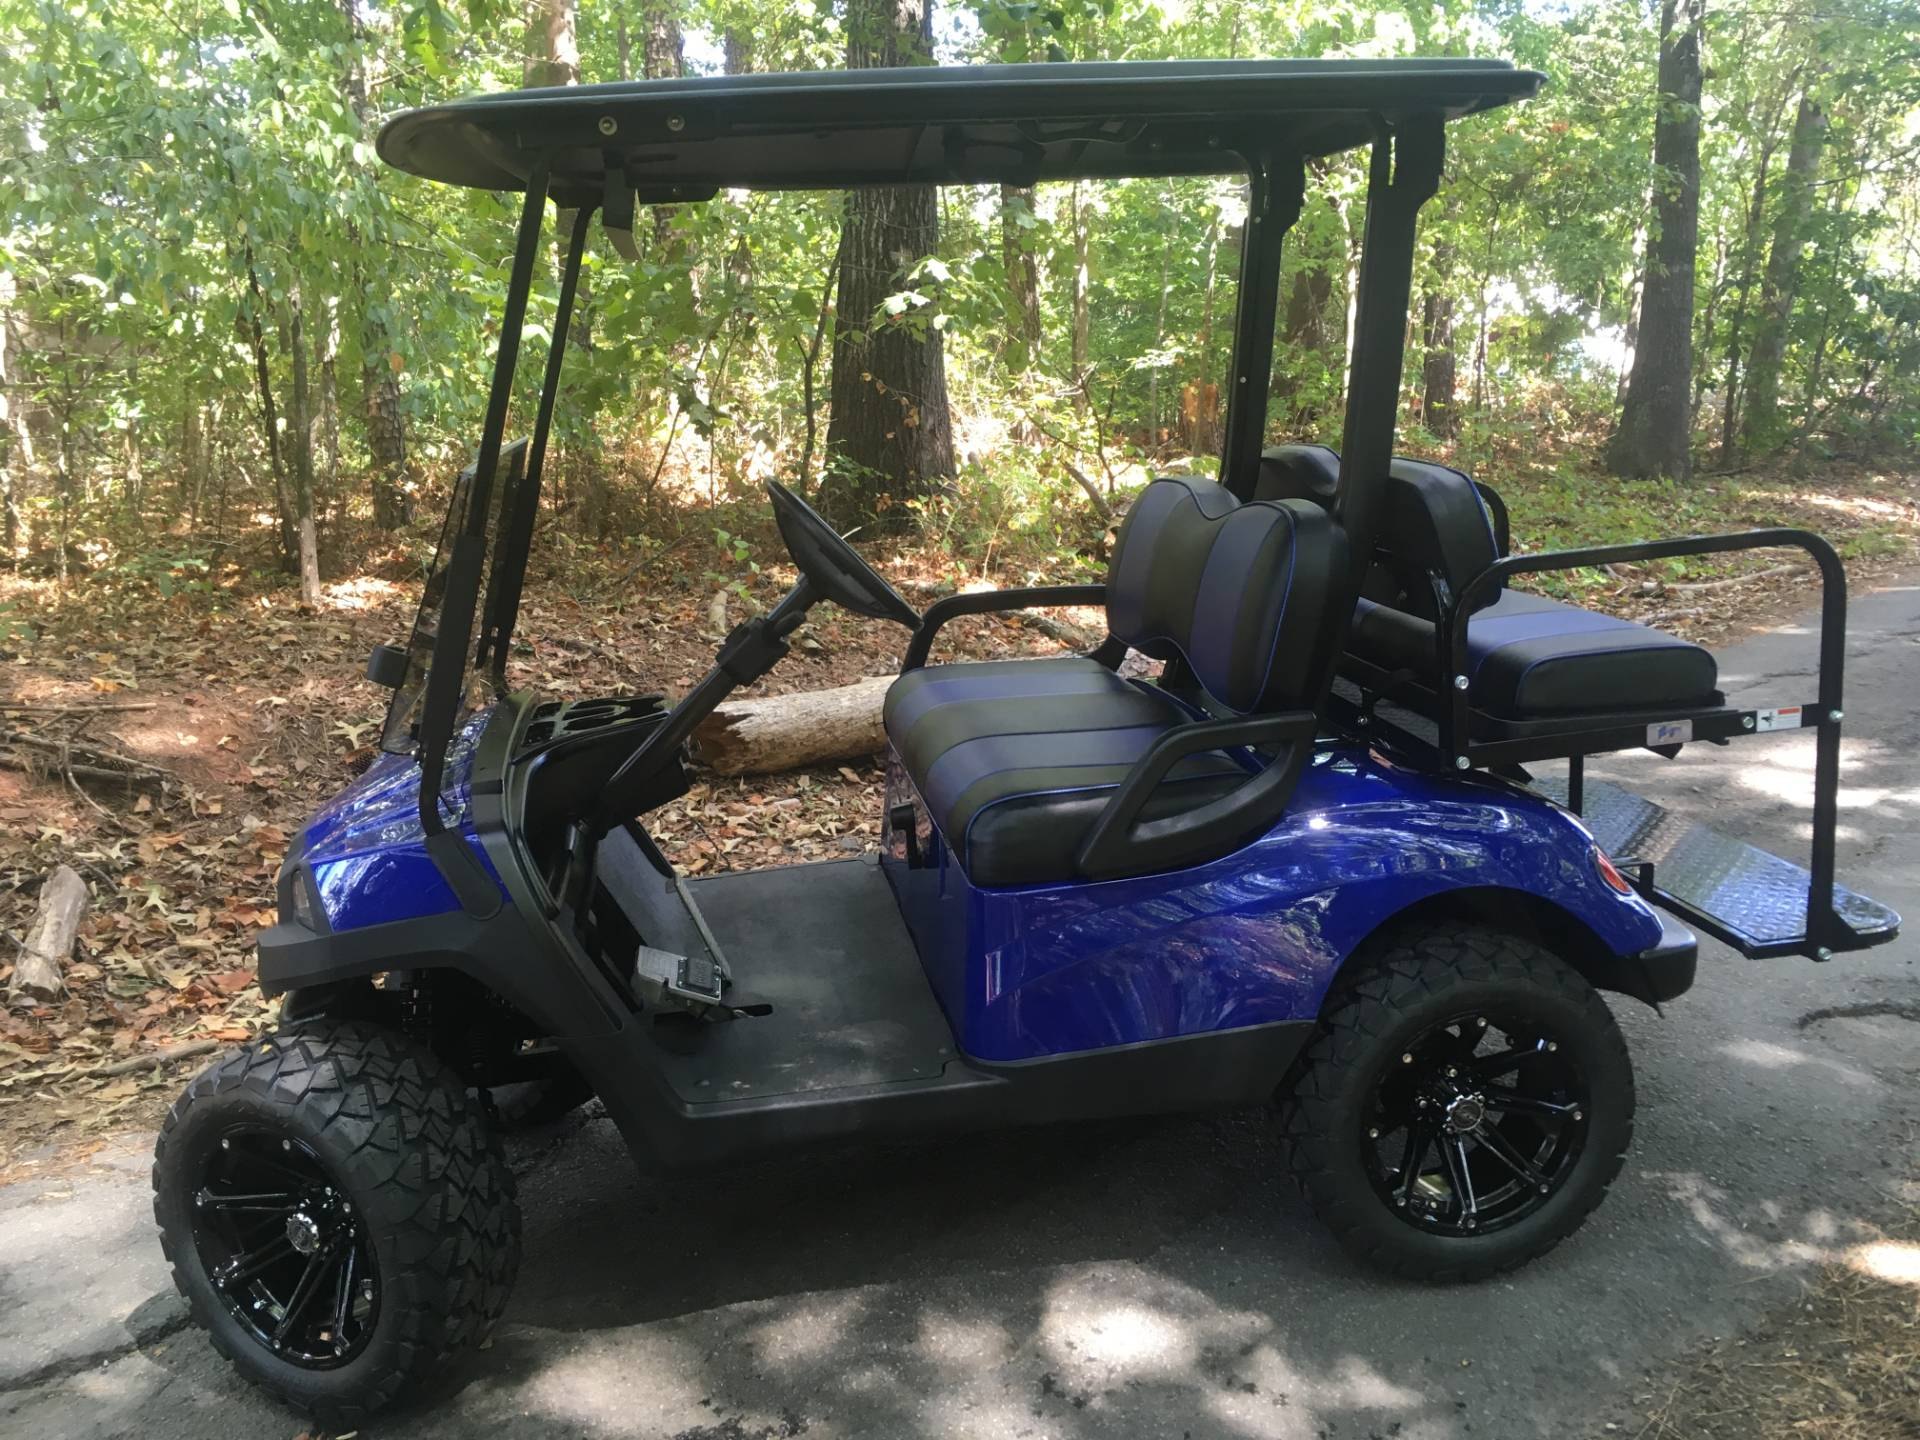 2016 YAMAHA DRIVE G-29 in Woodstock, Georgia - Photo 2